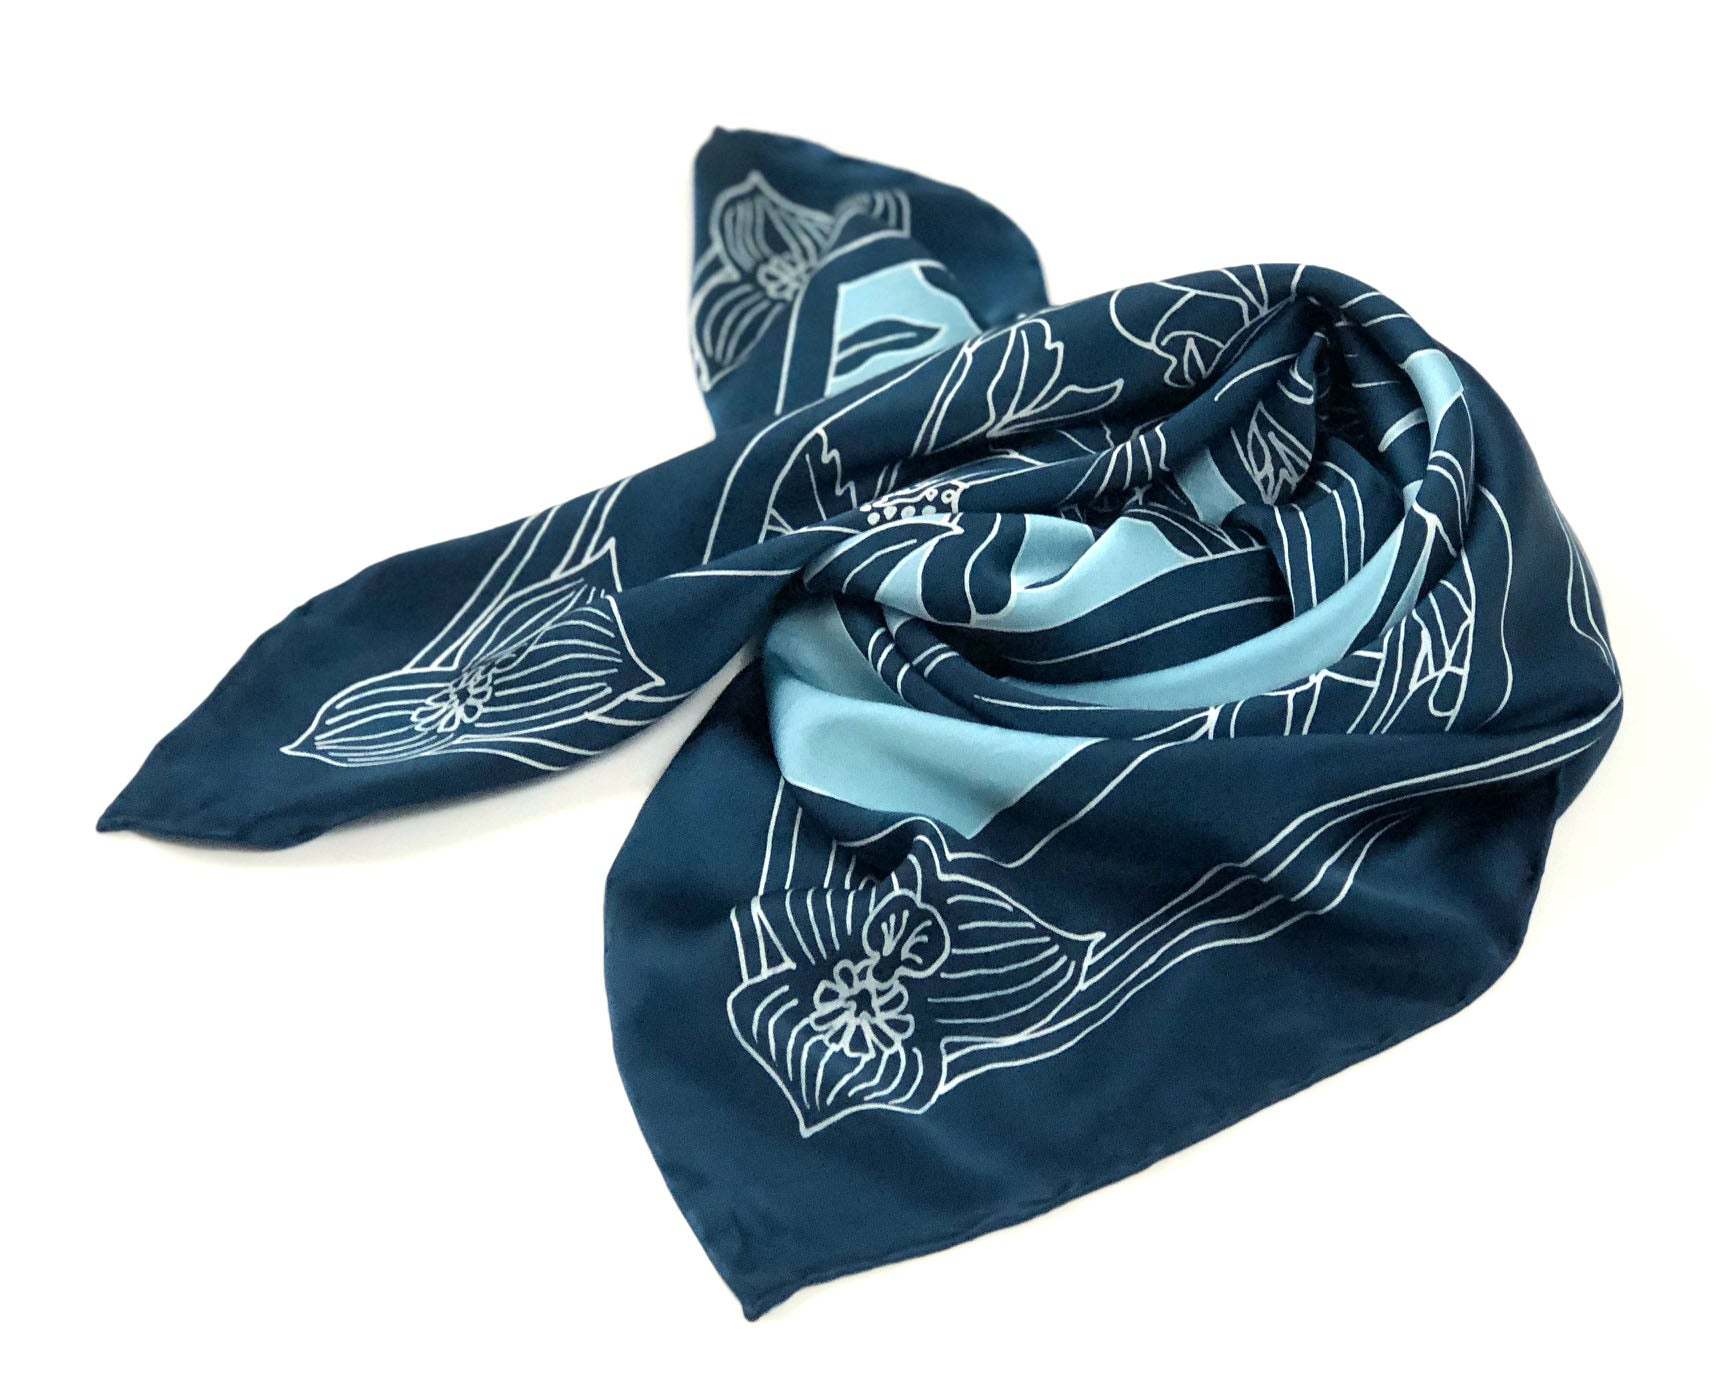 The Jungle Friends Foulard